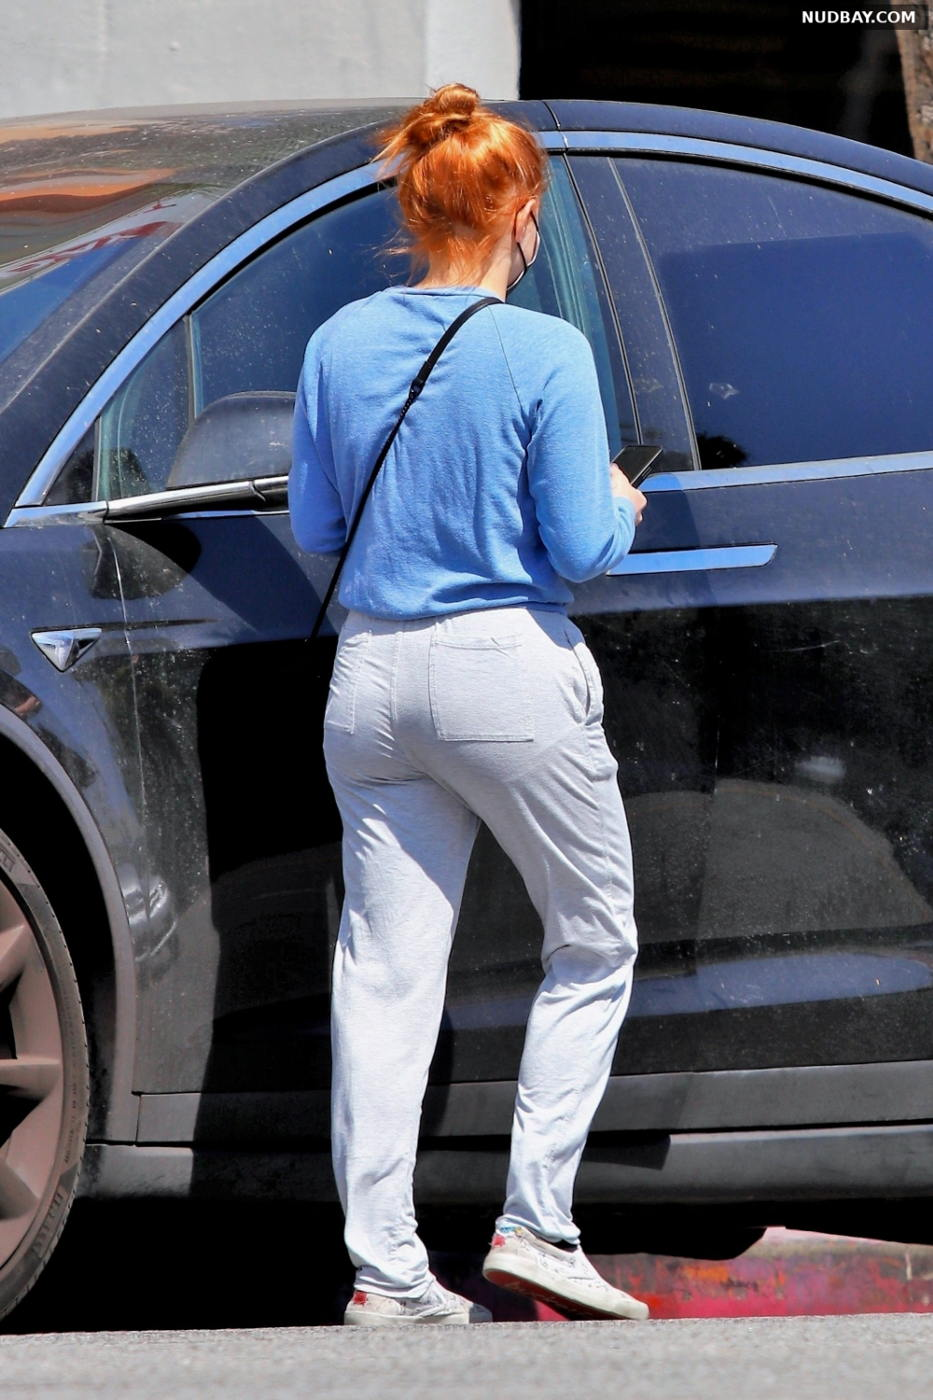 Ariel Winter booty out in Los Angeles Sep 02 2021